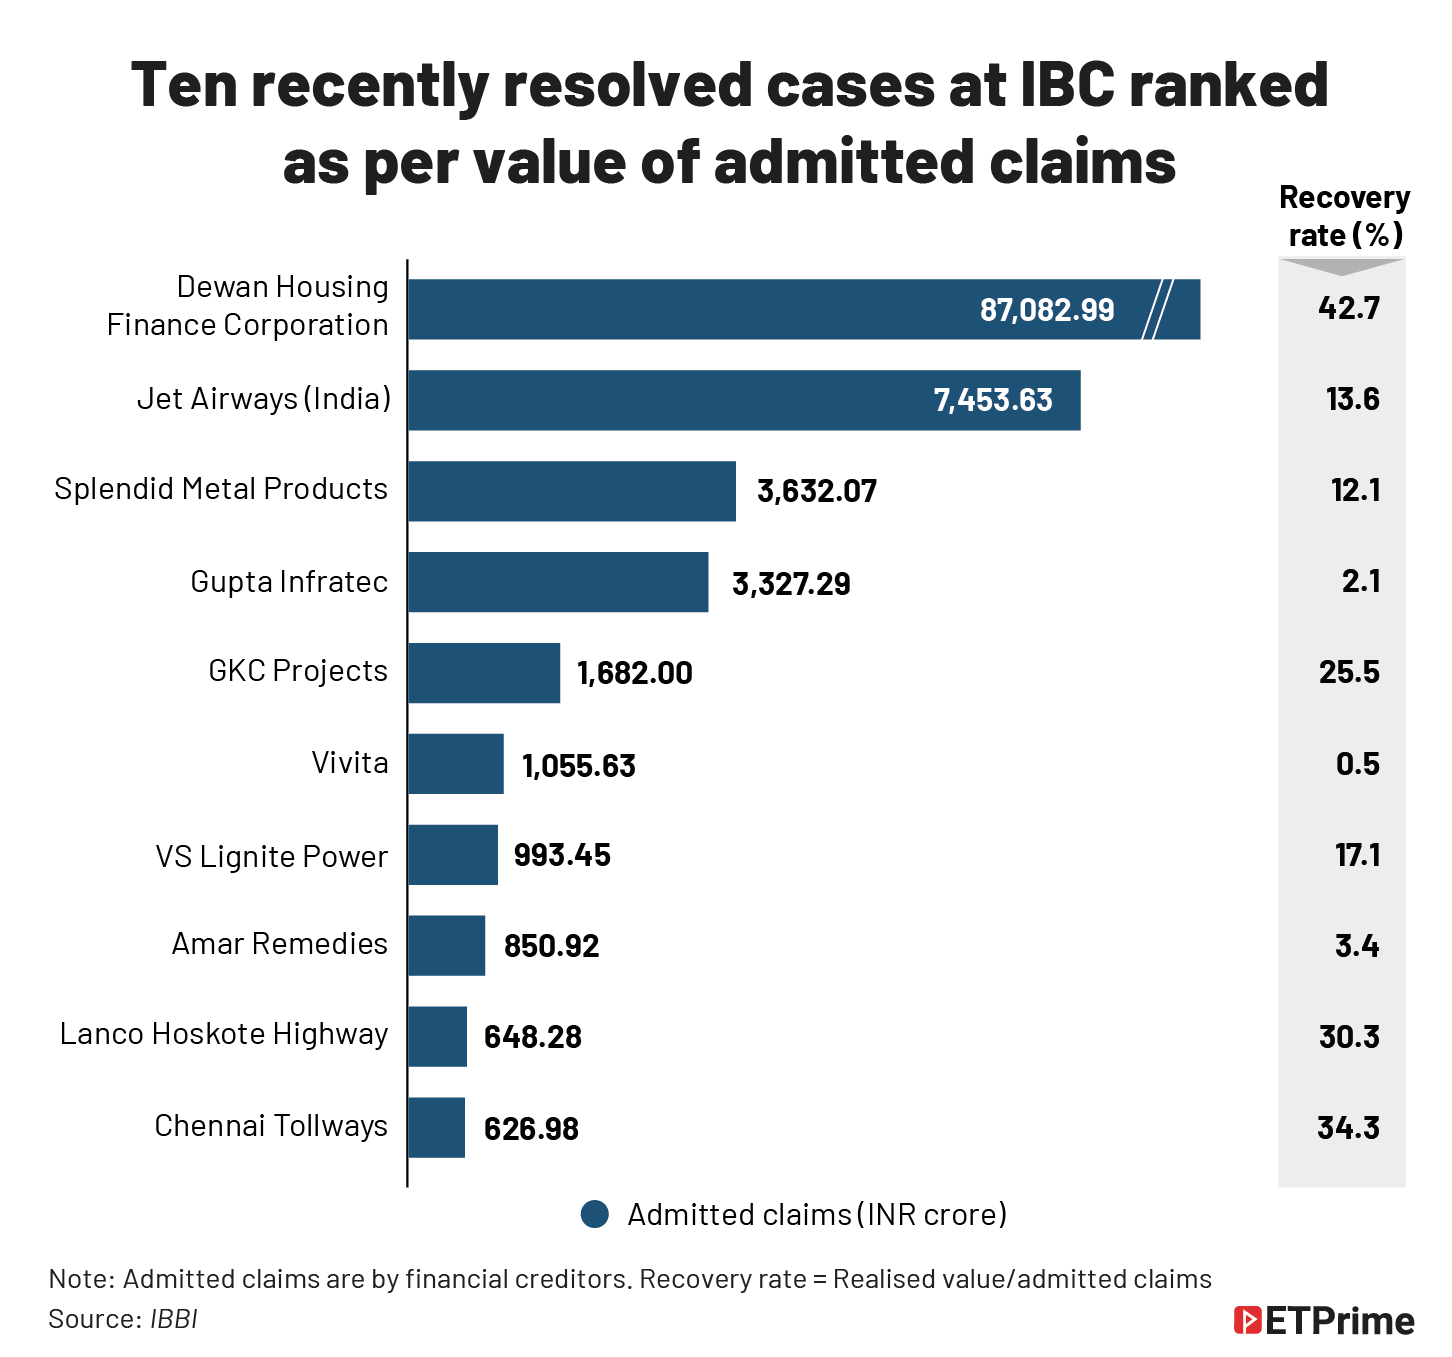 Ten recently resolved cases at IBC ranked as per value of admitted claims@2x